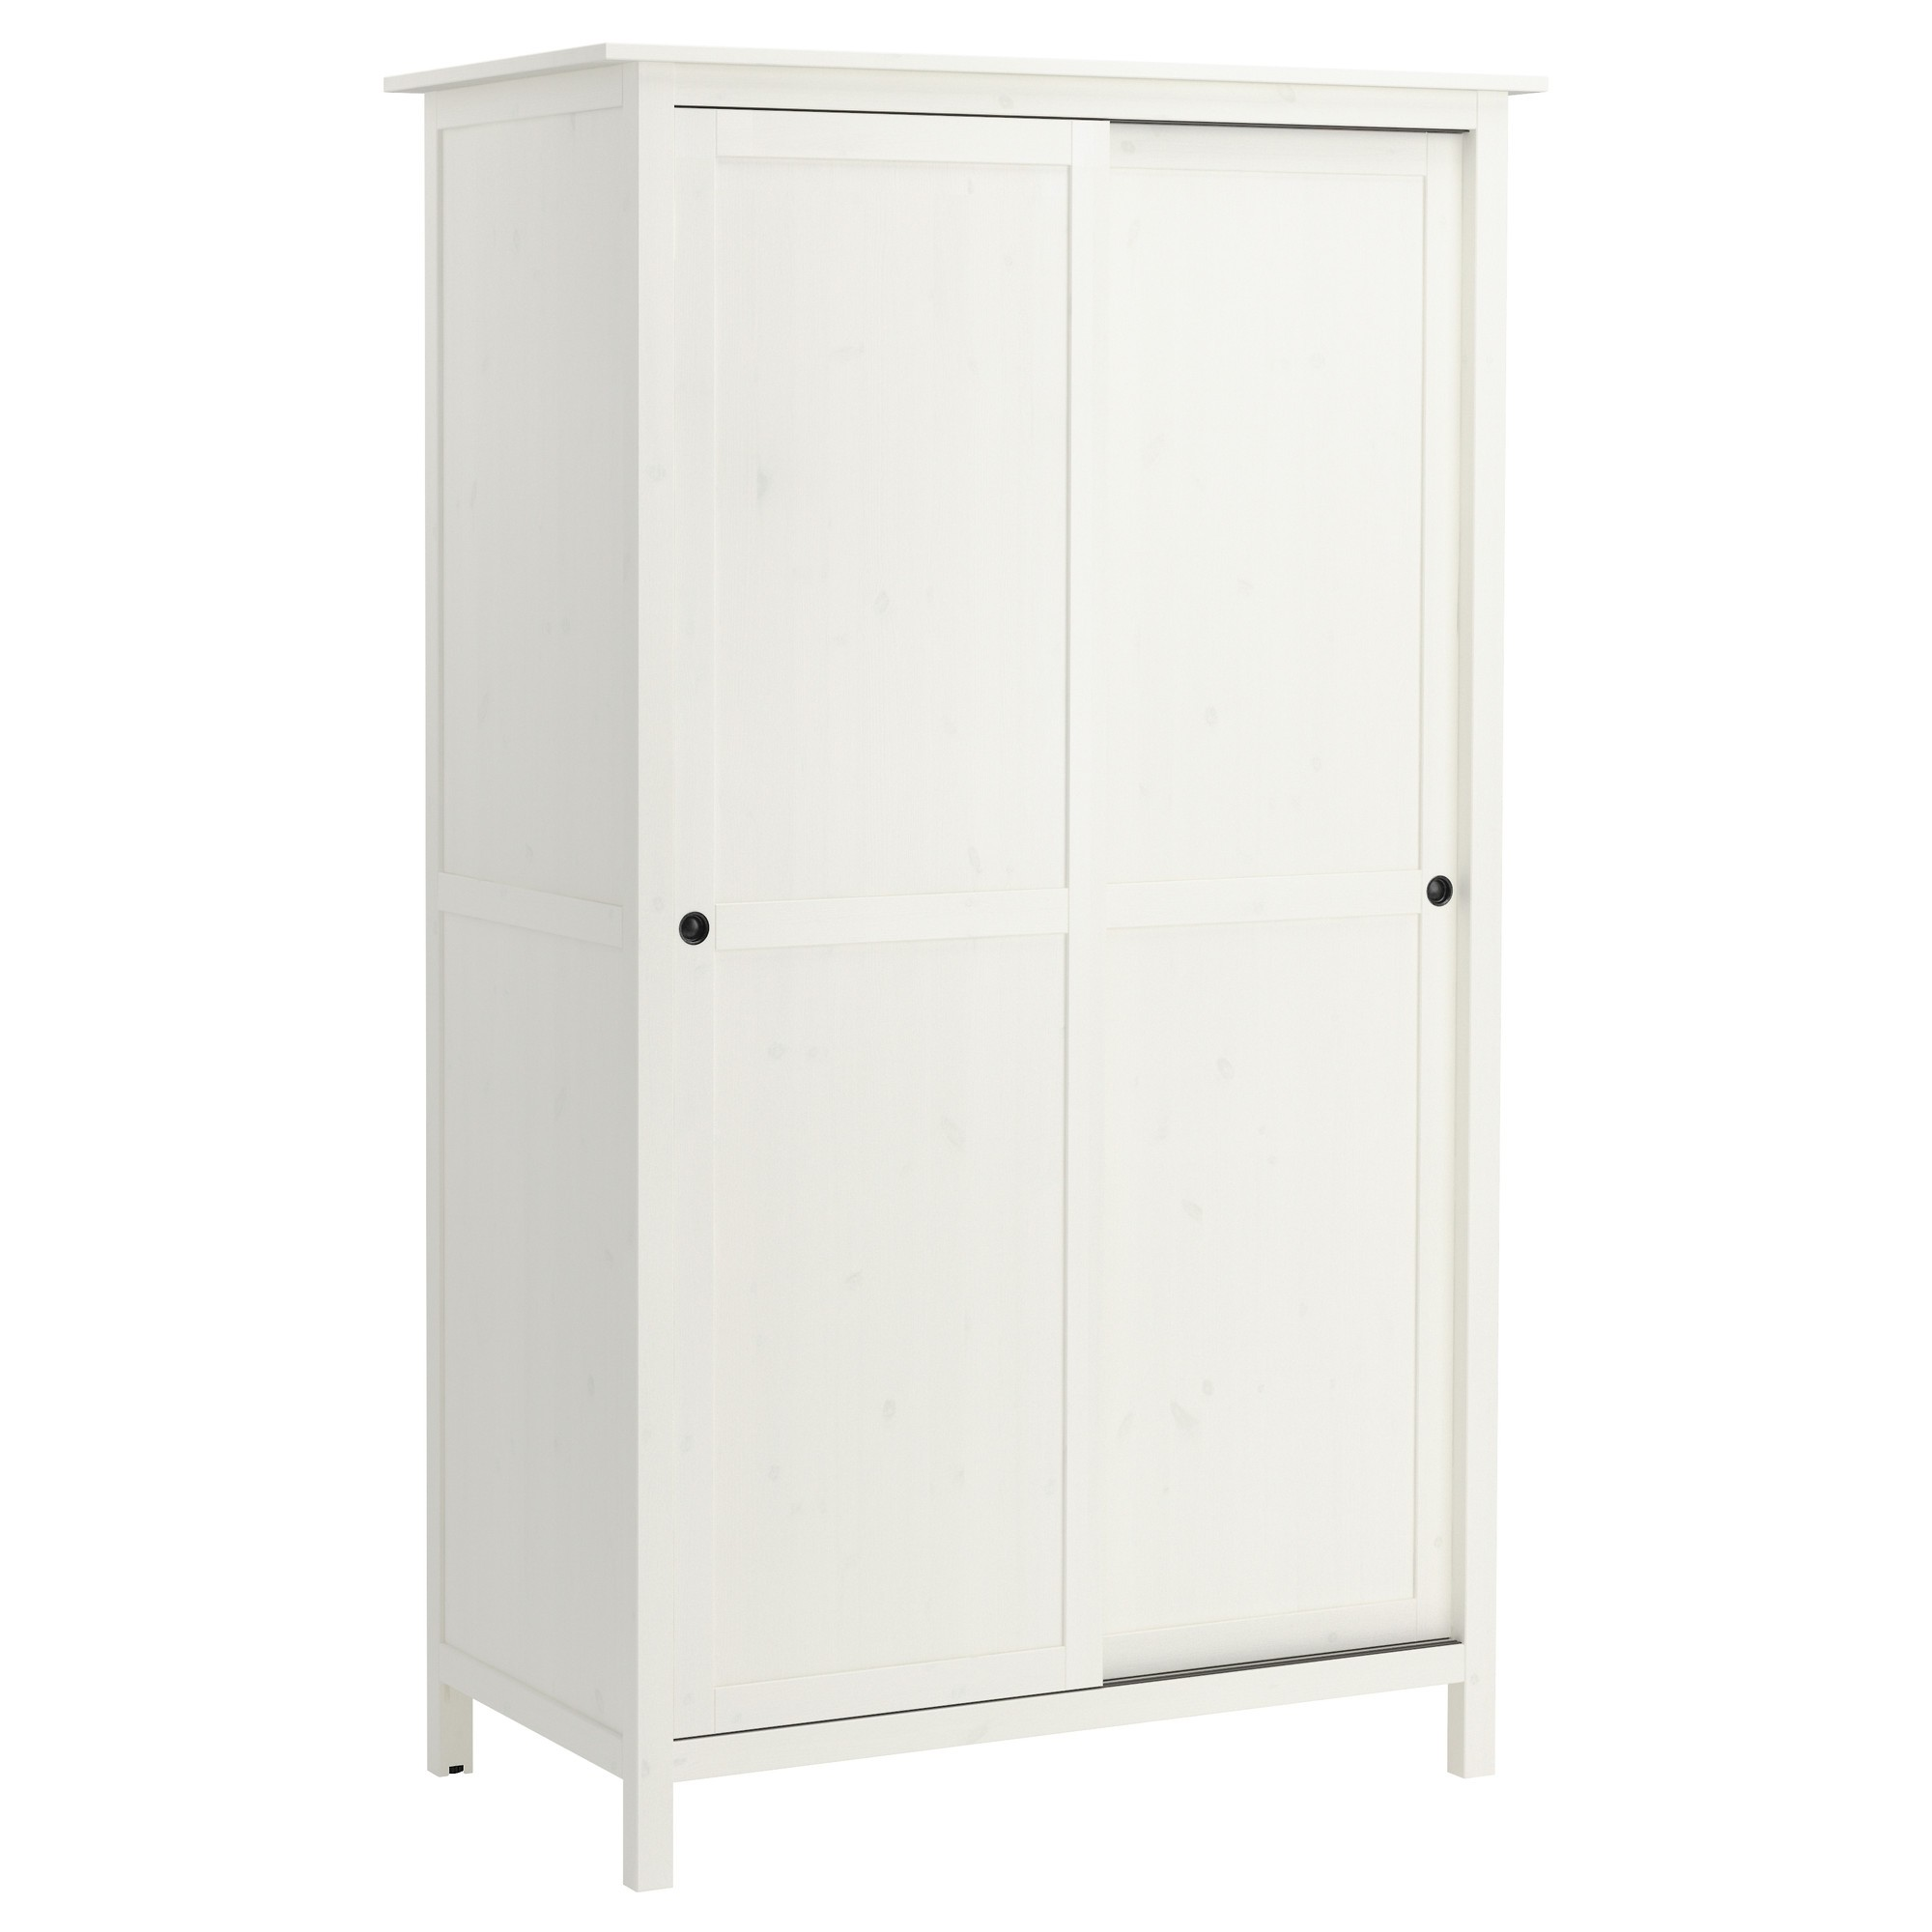 armoire 2 porte coulissante ikea armoire id es de d coration de maison gkd0p2gdw6. Black Bedroom Furniture Sets. Home Design Ideas